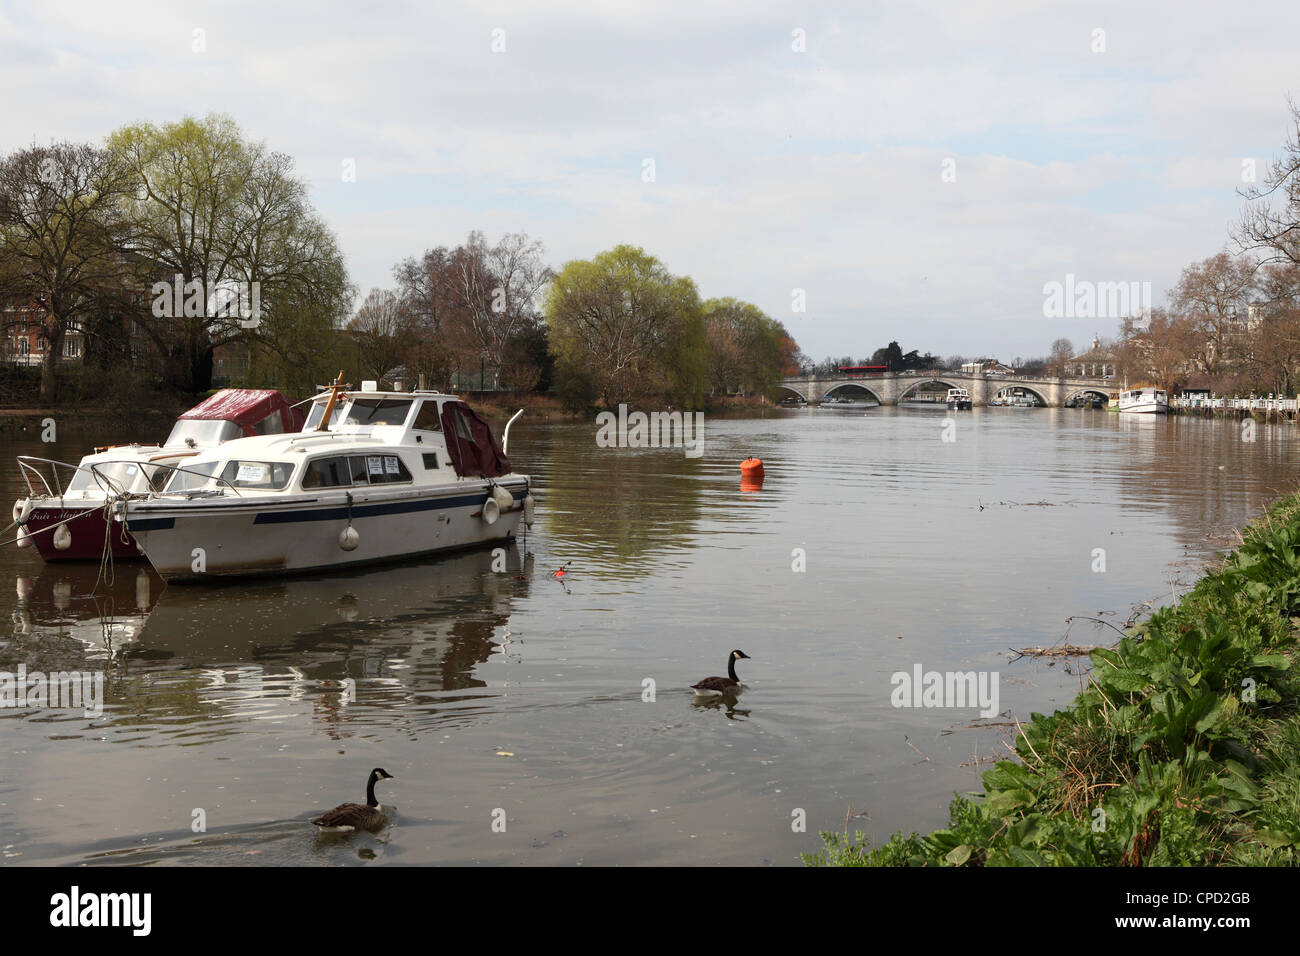 Boats and Canada geese on the River Thames, crossed by Richmond Bridge, Richmond, London, England, United Kingdom, Stock Photo